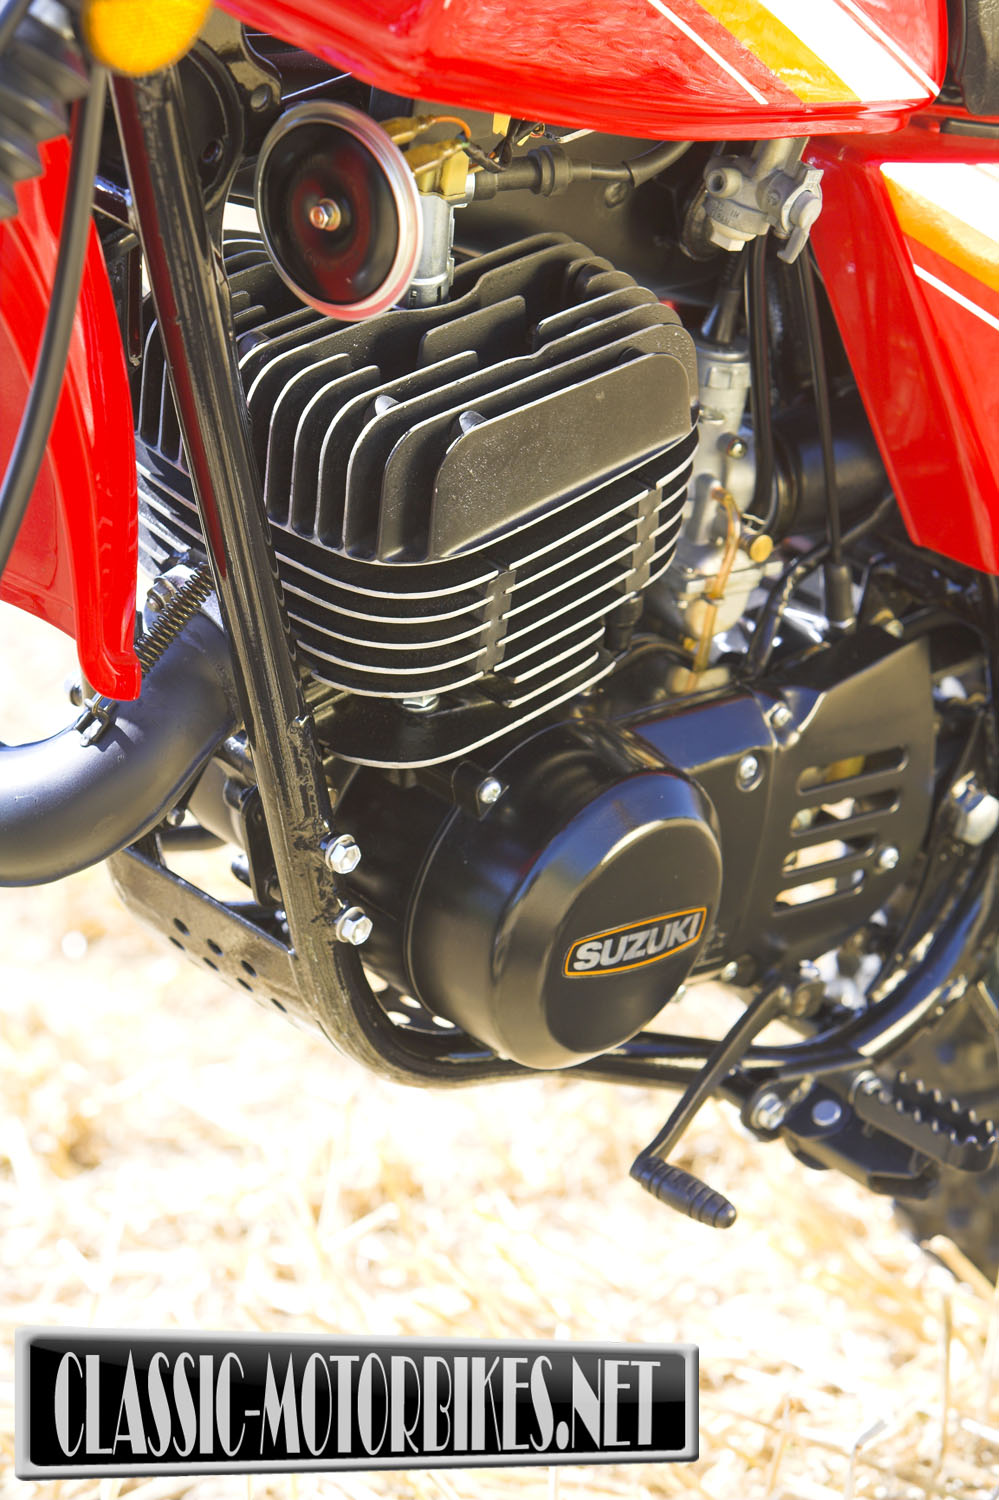 medium resolution of suzuki claimed the ts was heavily influenced and based upon the motocross machines of 1968 but